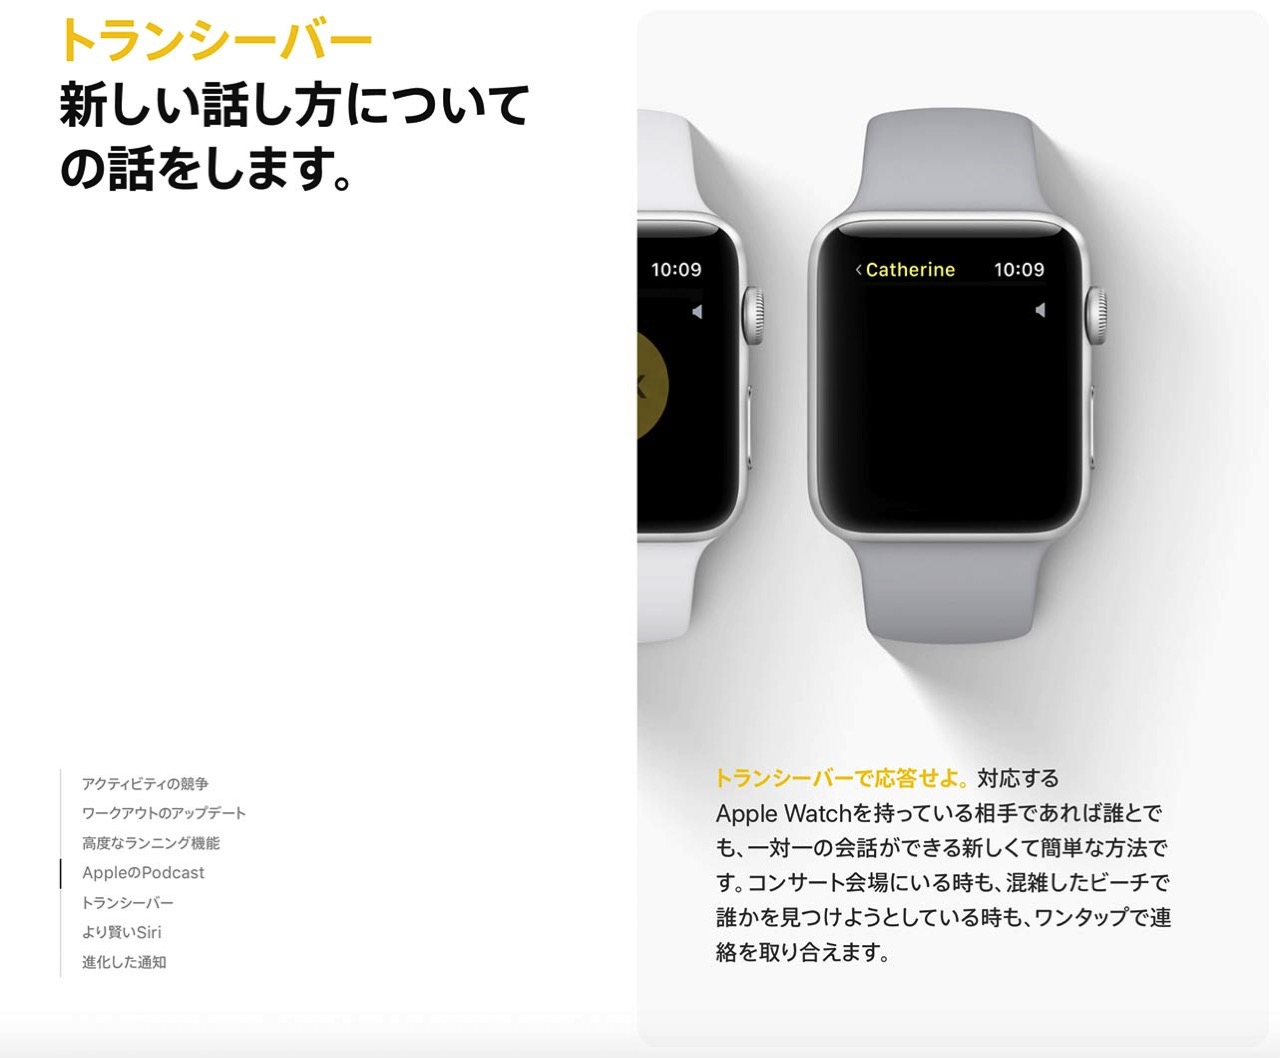 Watchos5previewpage